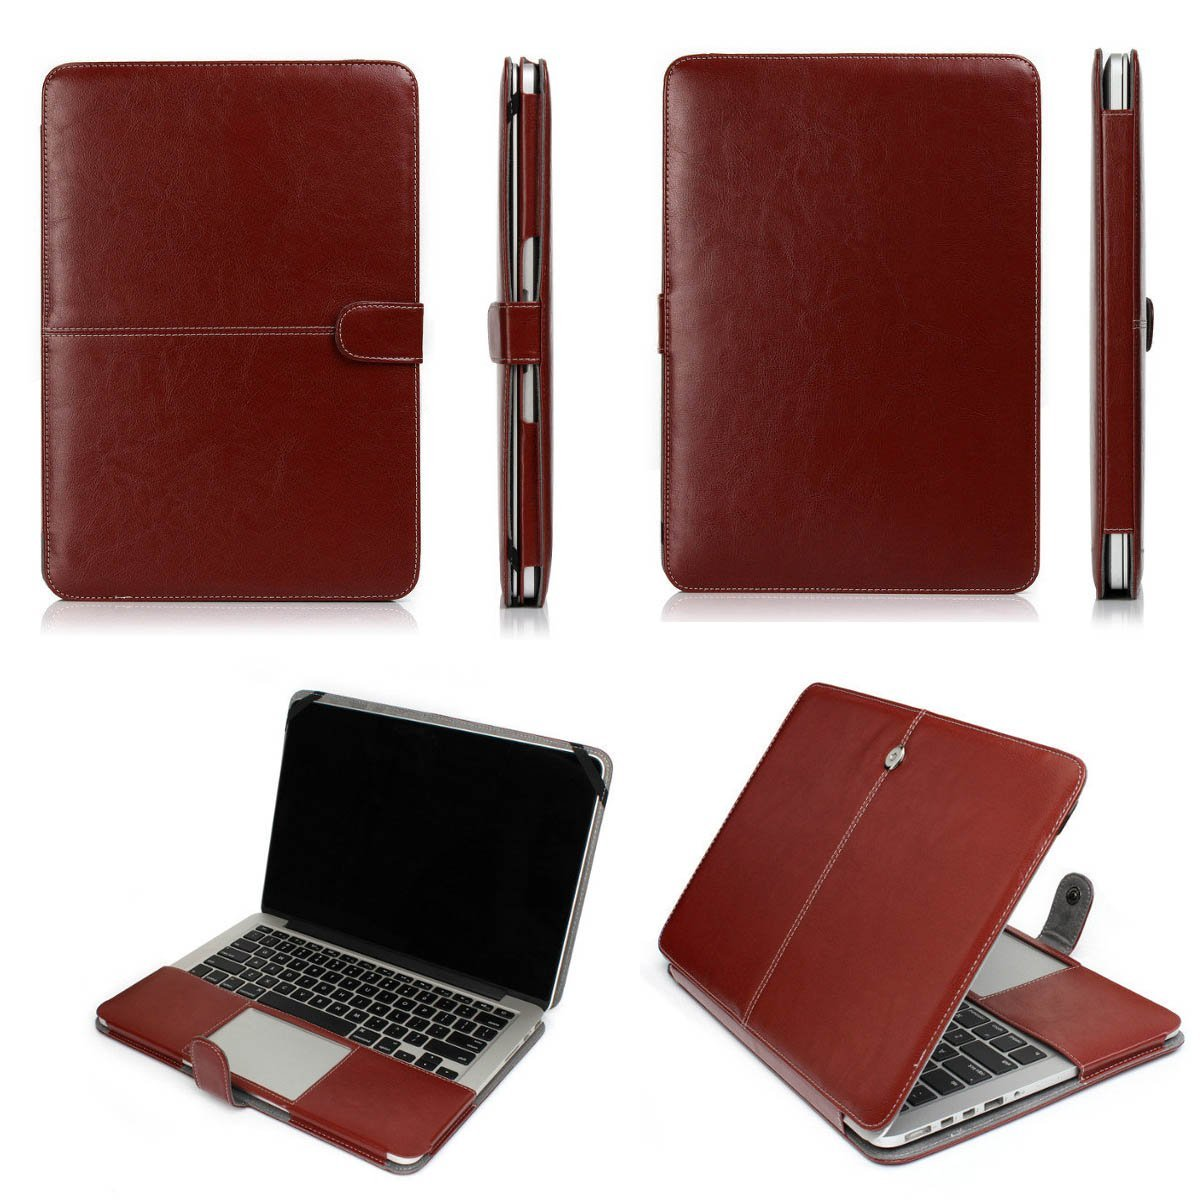 Laptop Bag Case for Macbook Air 11 13 Pro 13 15 PU Leather Sleeve Laptop bag Case for Macbook Air 12 13 Pro 13 15 Bag Case